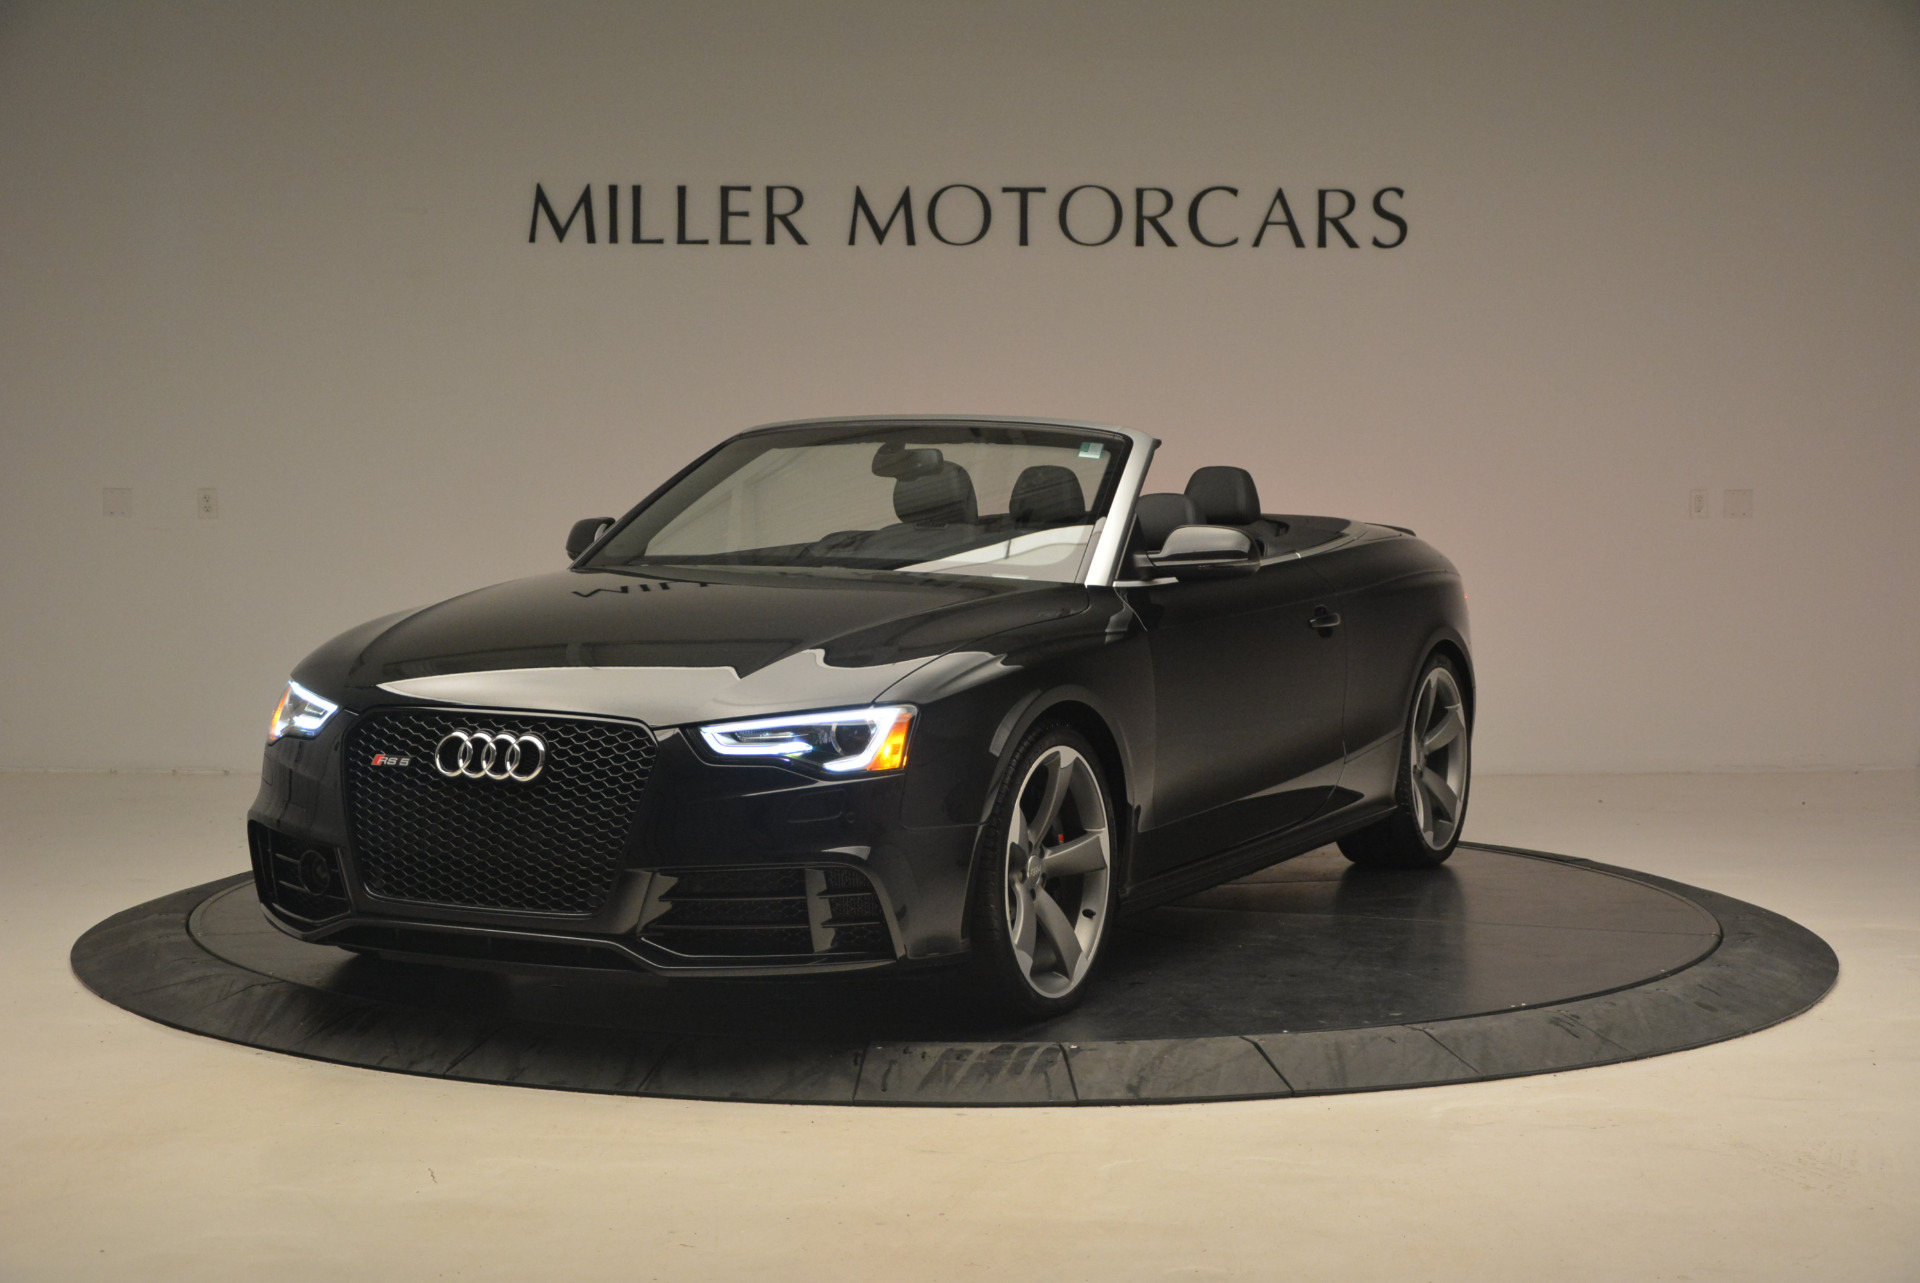 Used 2014 Audi RS 5 quattro for sale Sold at McLaren Greenwich in Greenwich CT 06830 1